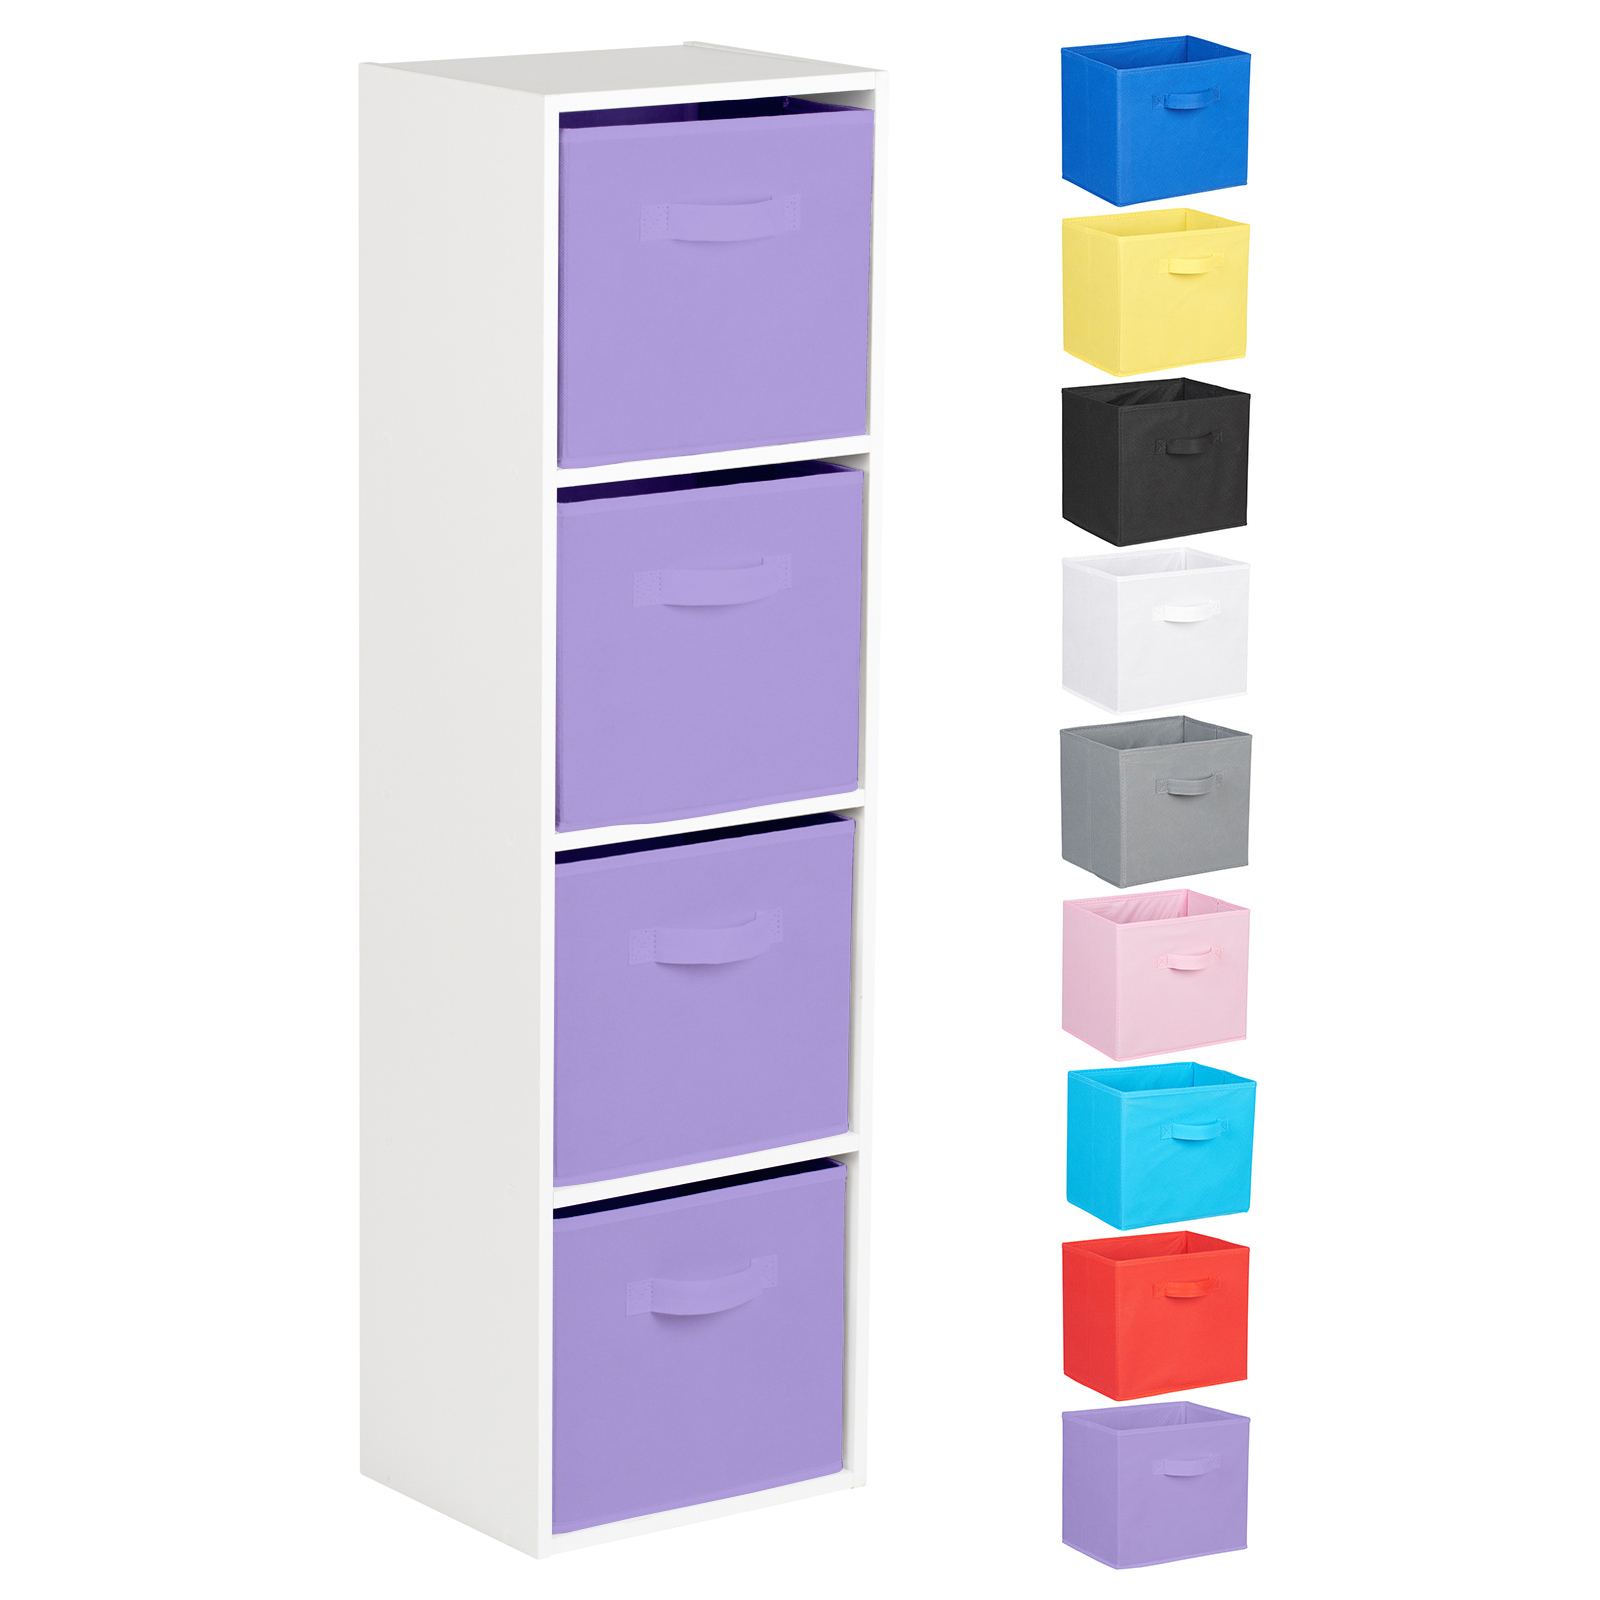 Hartleys-4-Tier-White-Bookcase-Wooden-Display-Shelving-Unit-amp-Fabric-Storage-Box thumbnail 29